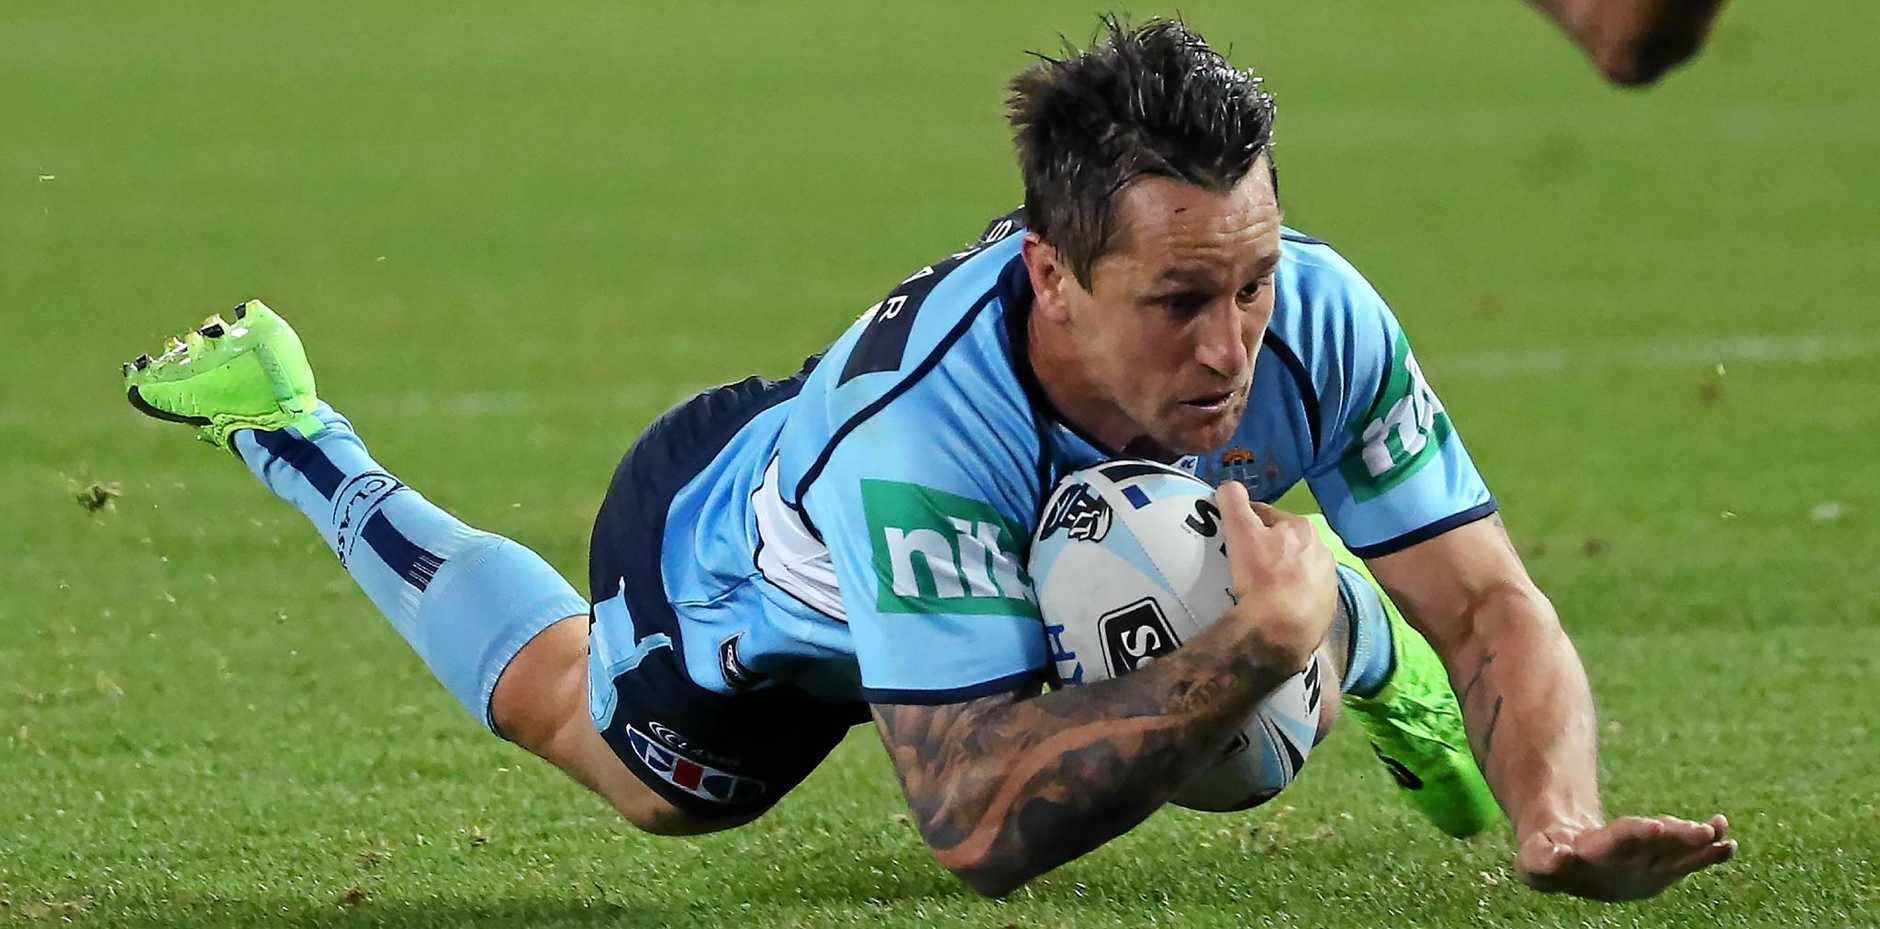 GAME OF TWO HALVES: Mitchell Pearce was outstanding for the Blues in the first half, but where was he in the second?